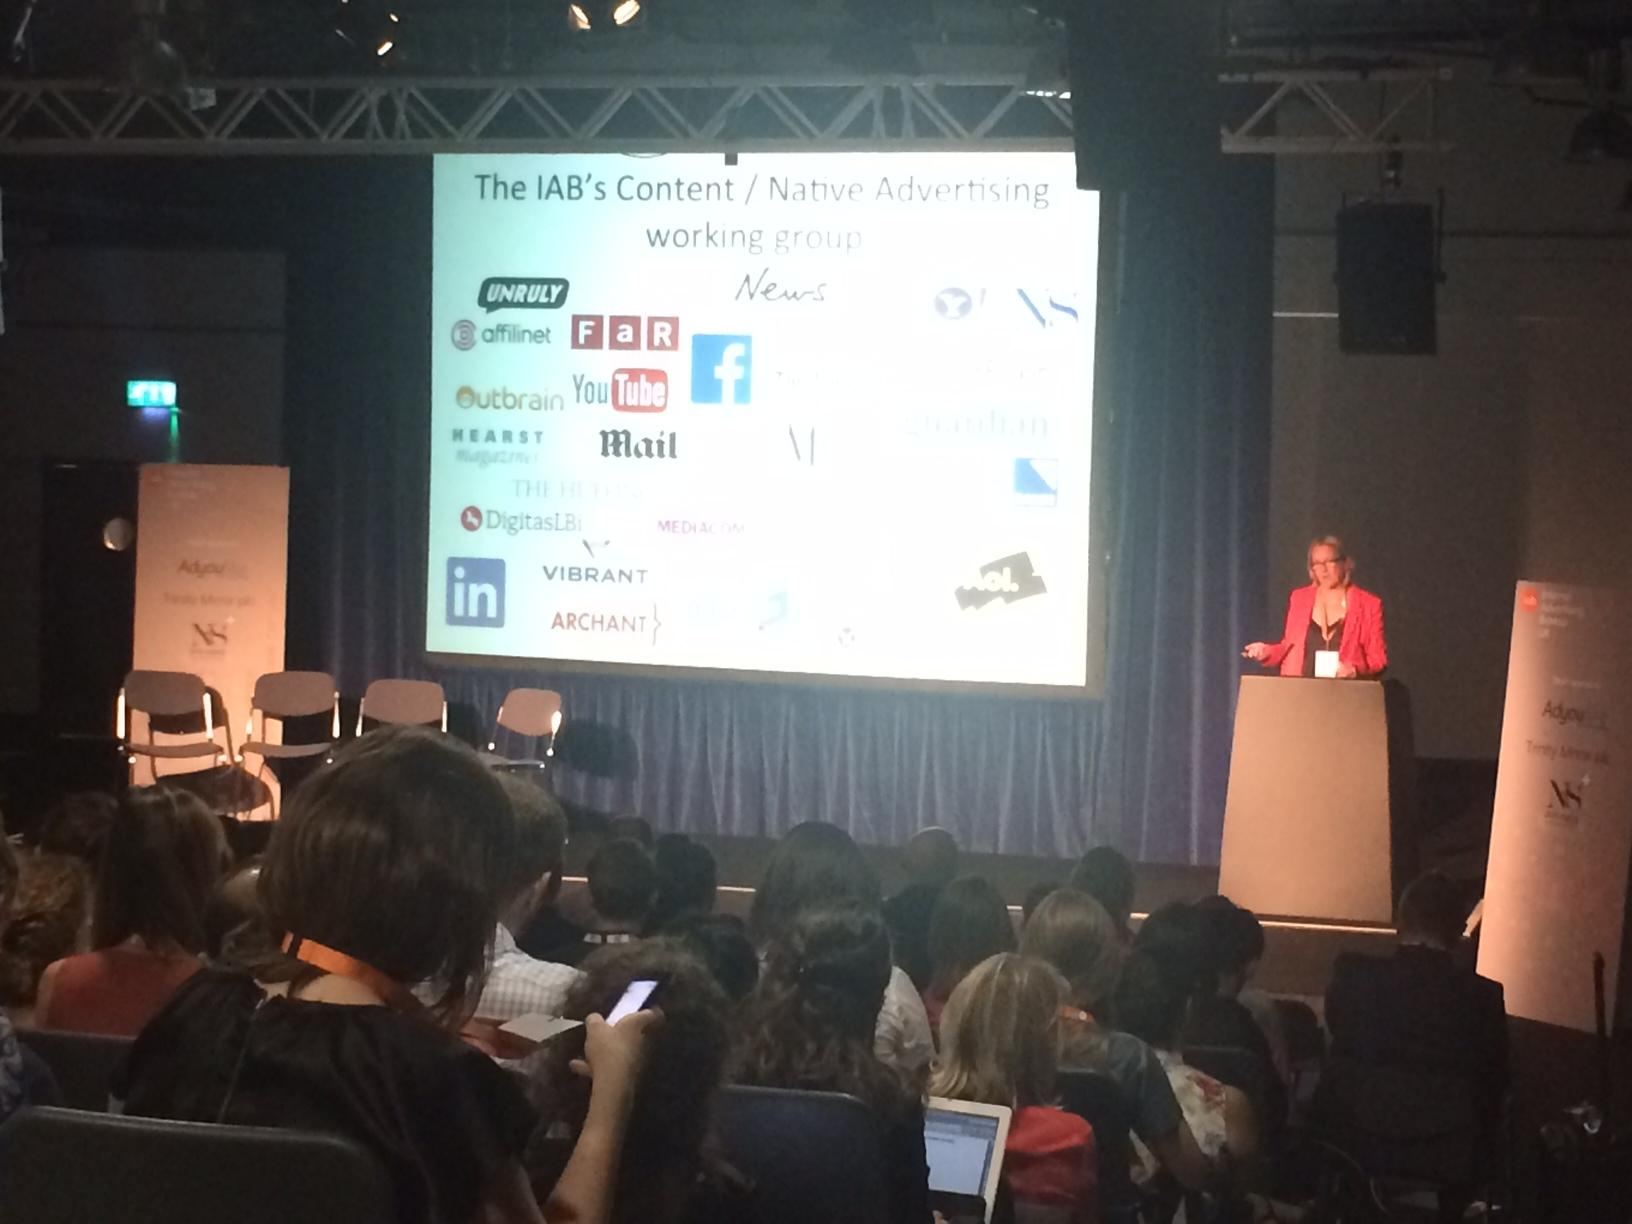 Big crowds at the @IABUK's first content marketing conference today in London. @clareob gets things started #iabuk http://t.co/8DUBOLgpme